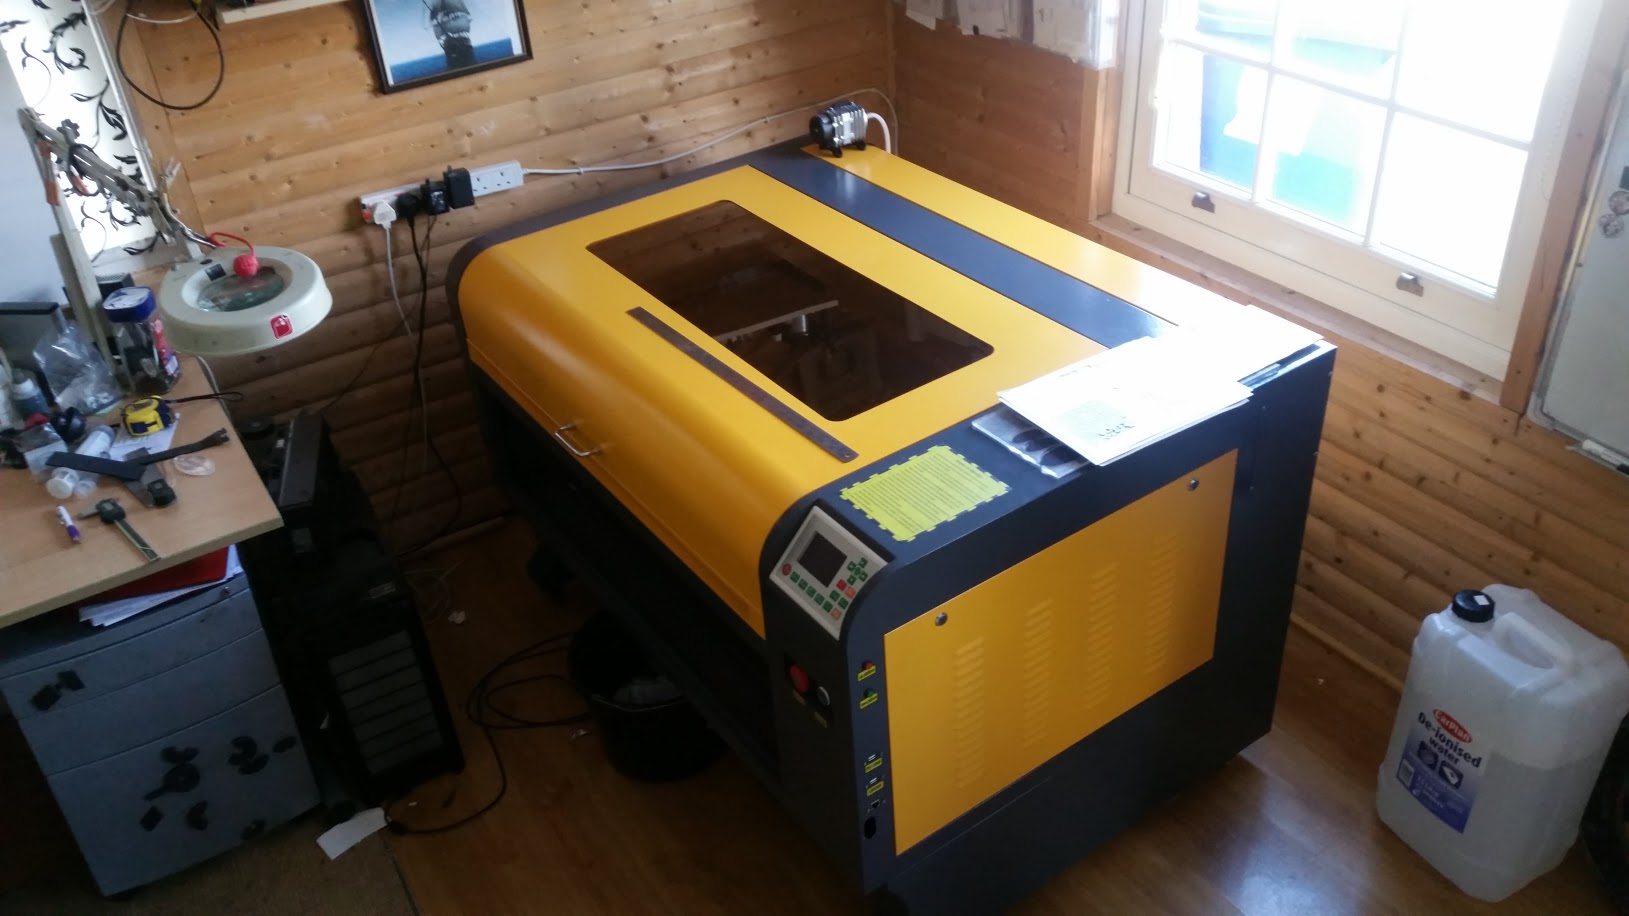 Rebuilding terribly engineered laser cutter